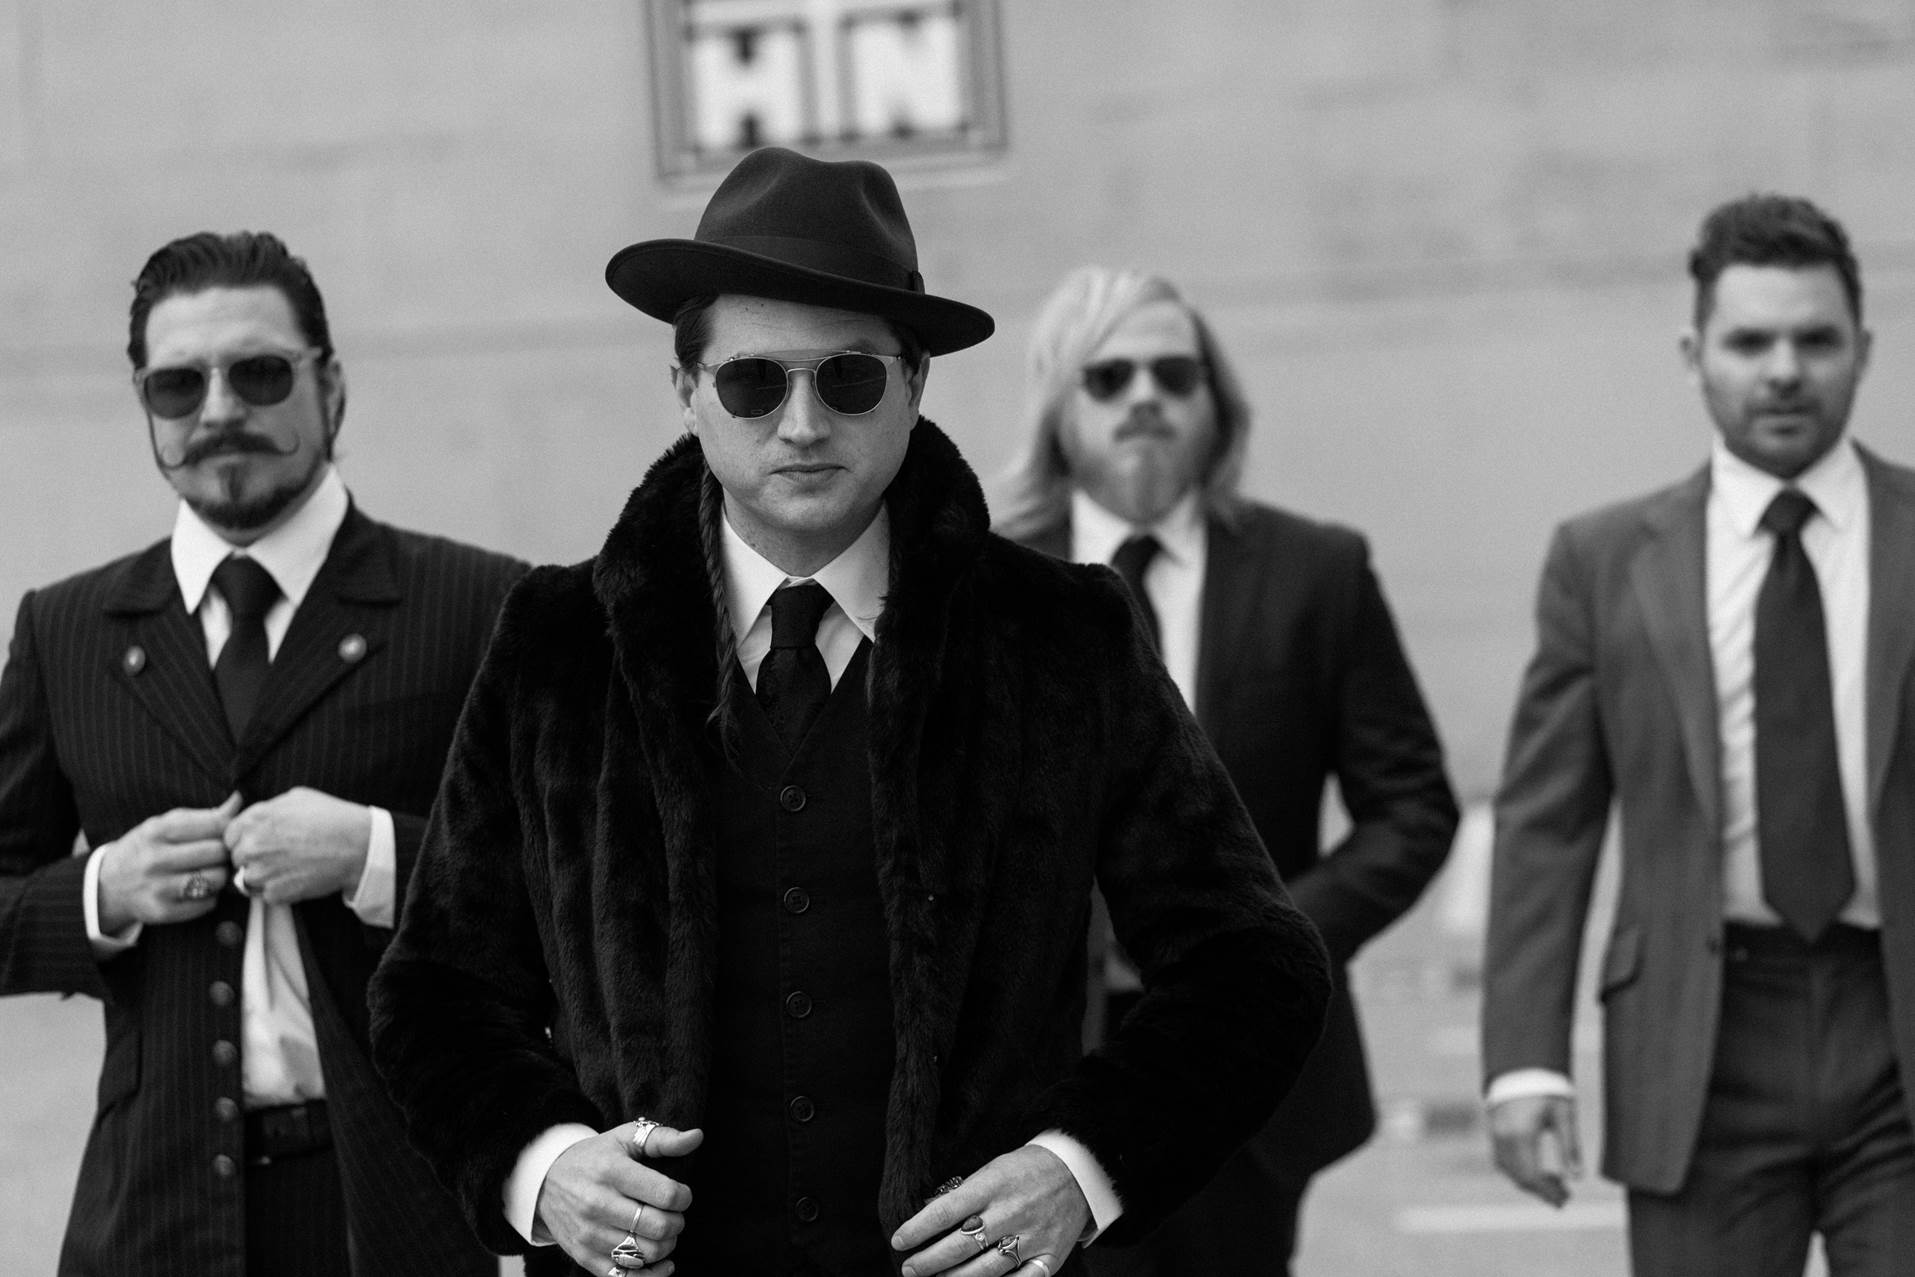 Rival Sons: Clubshow am 5. Juni in Berlin – Samstags auf Rock am Ring